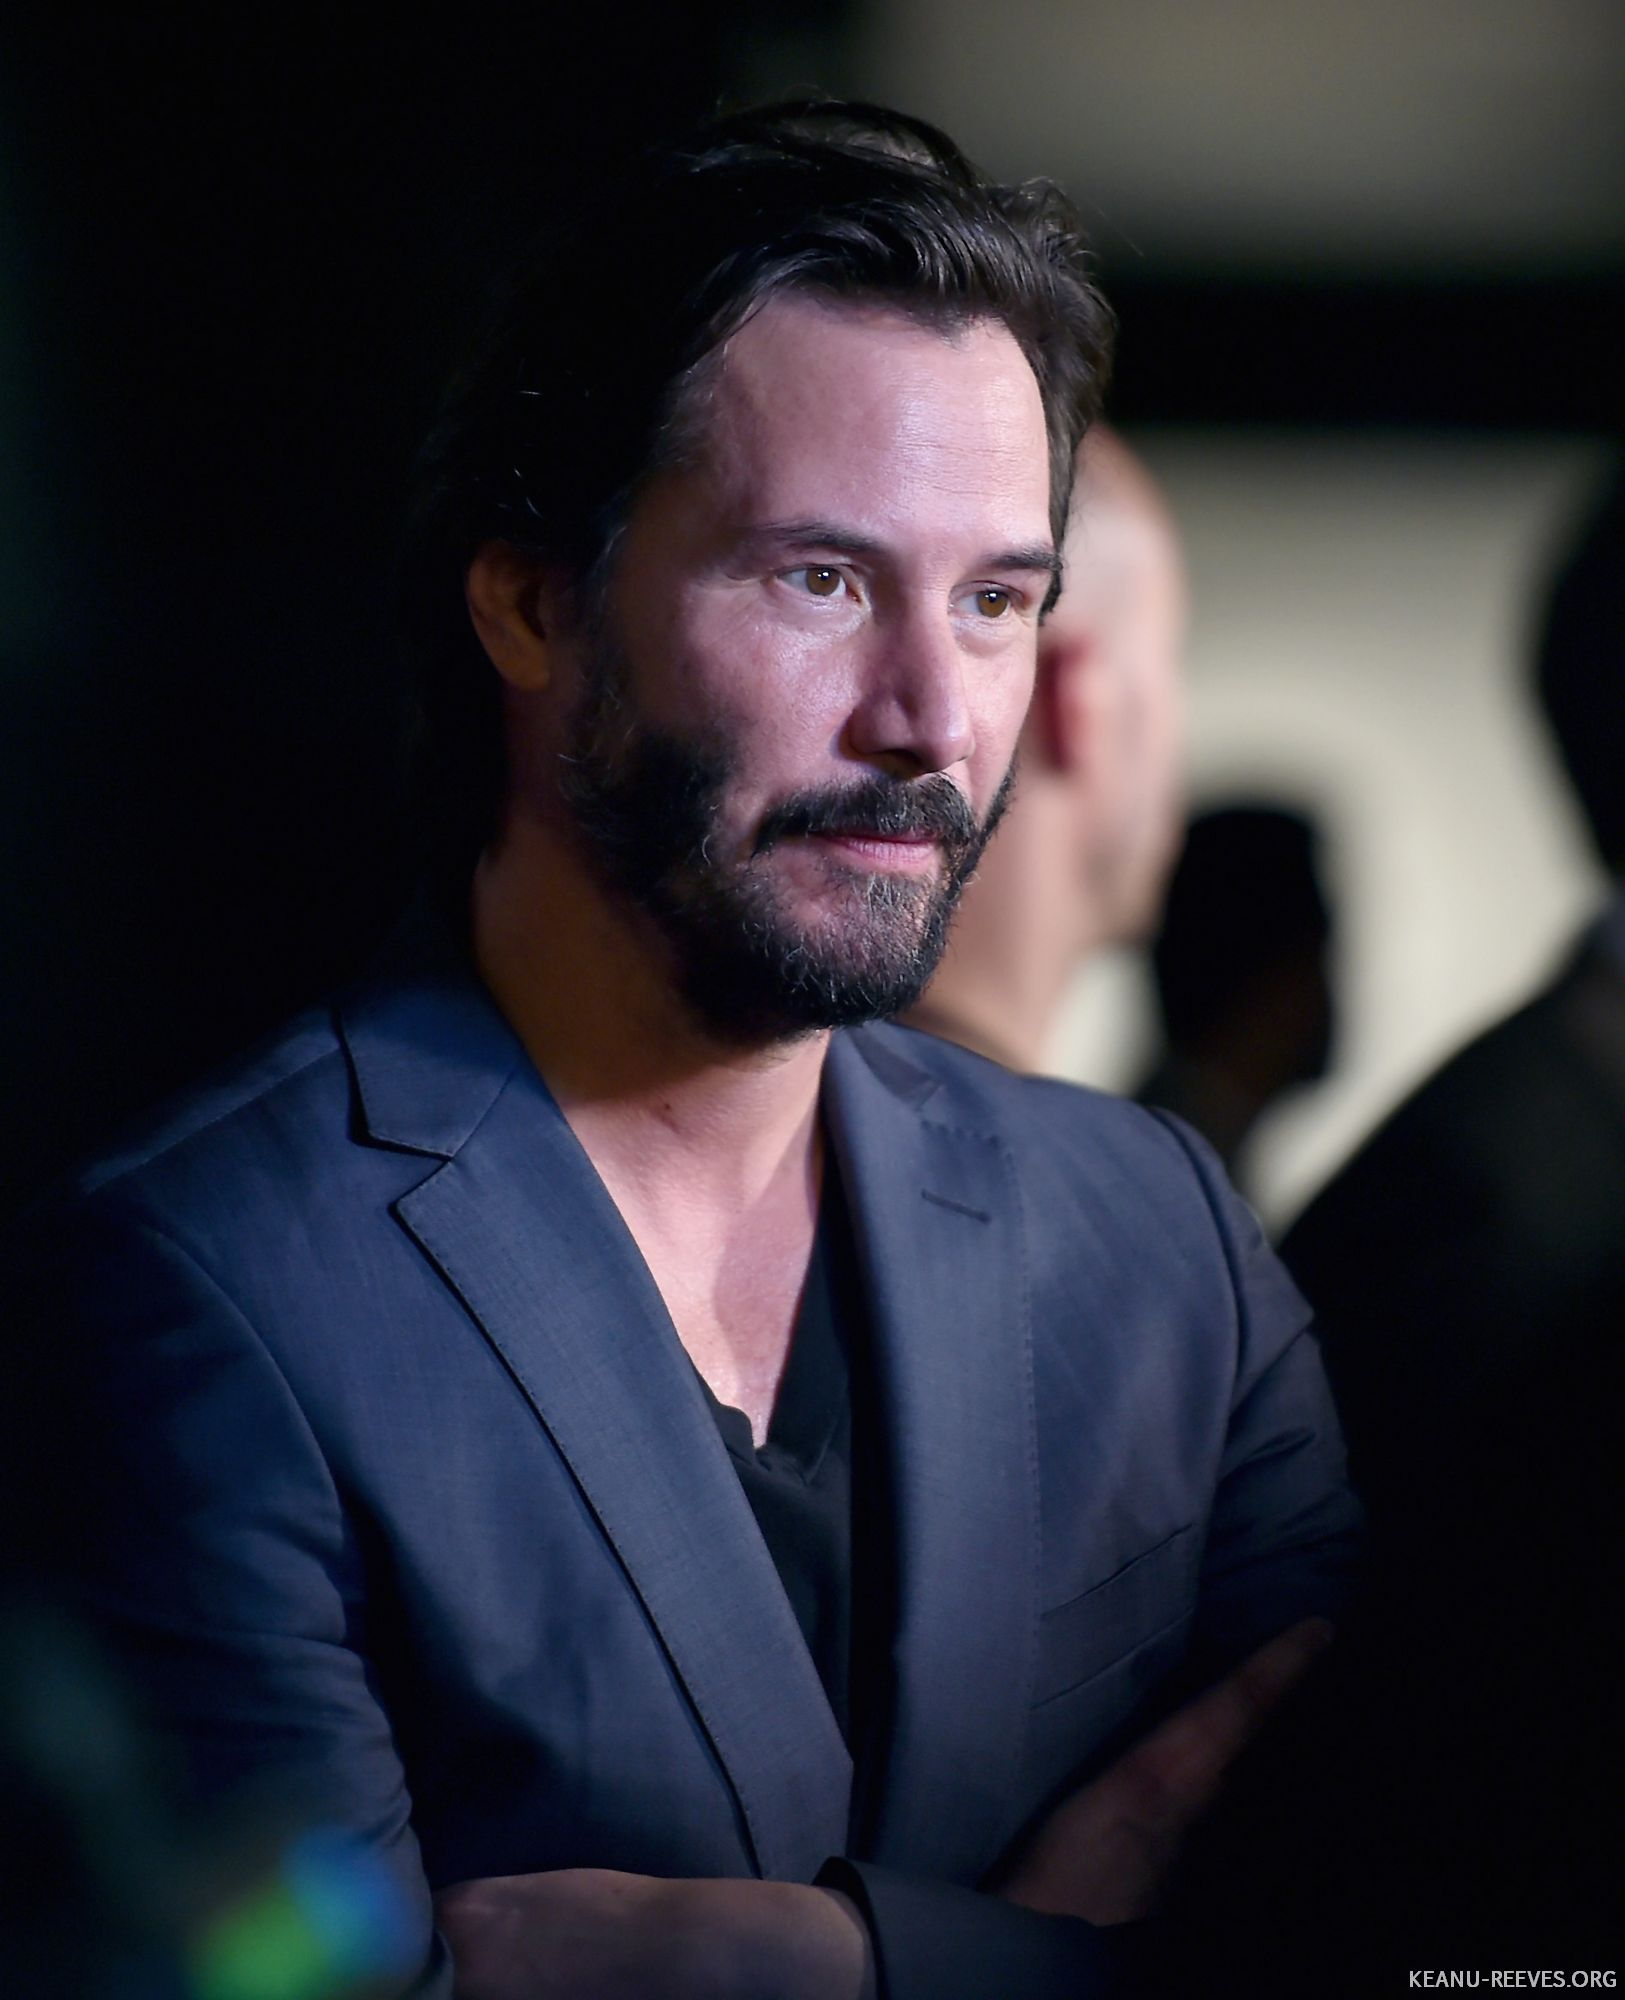 keanu reeves imdb - HD 1892×1344